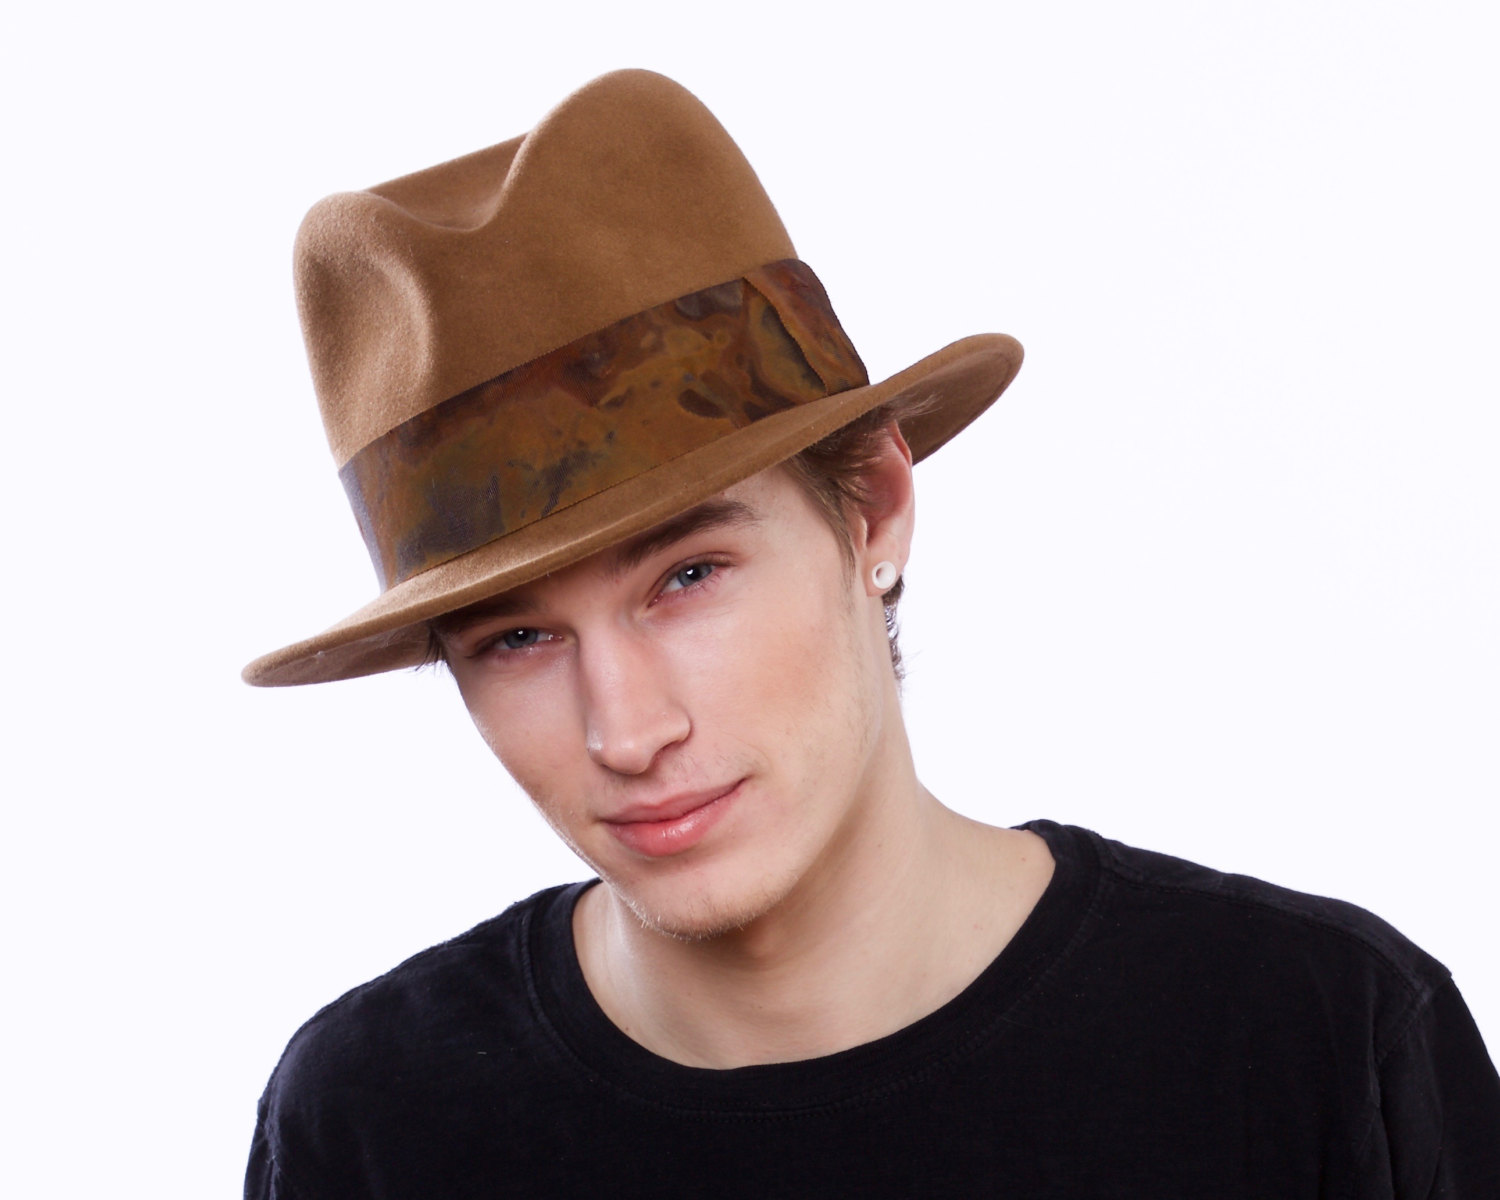 Brown felt hat.